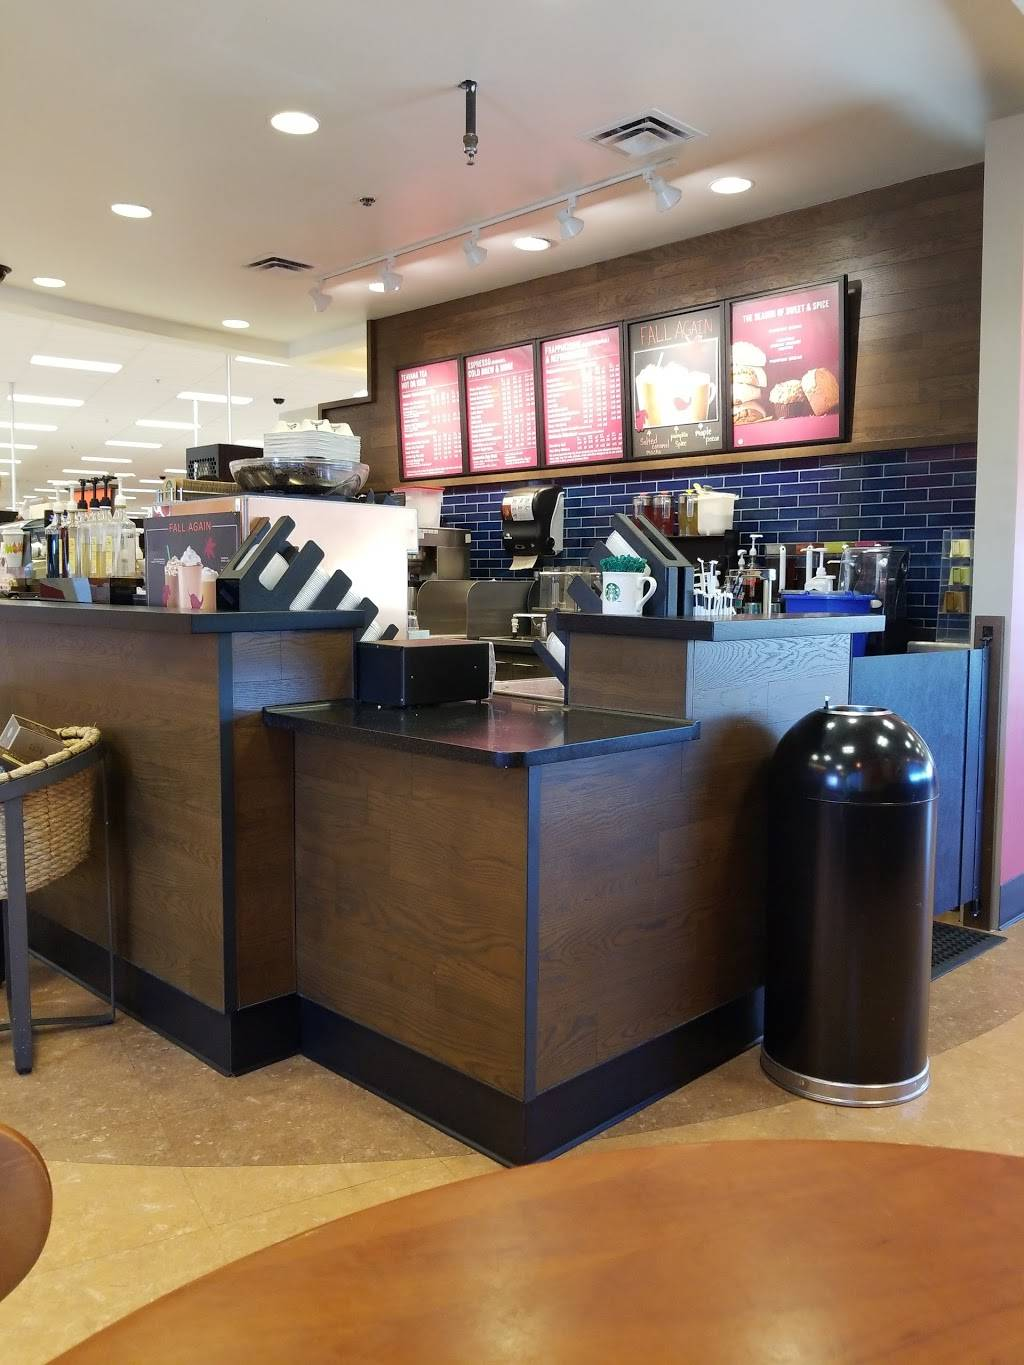 Starbucks - cafe  | Photo 1 of 3 | Address: 6600 N 72nd St, Omaha, NE 68122, USA | Phone: (402) 573-2220